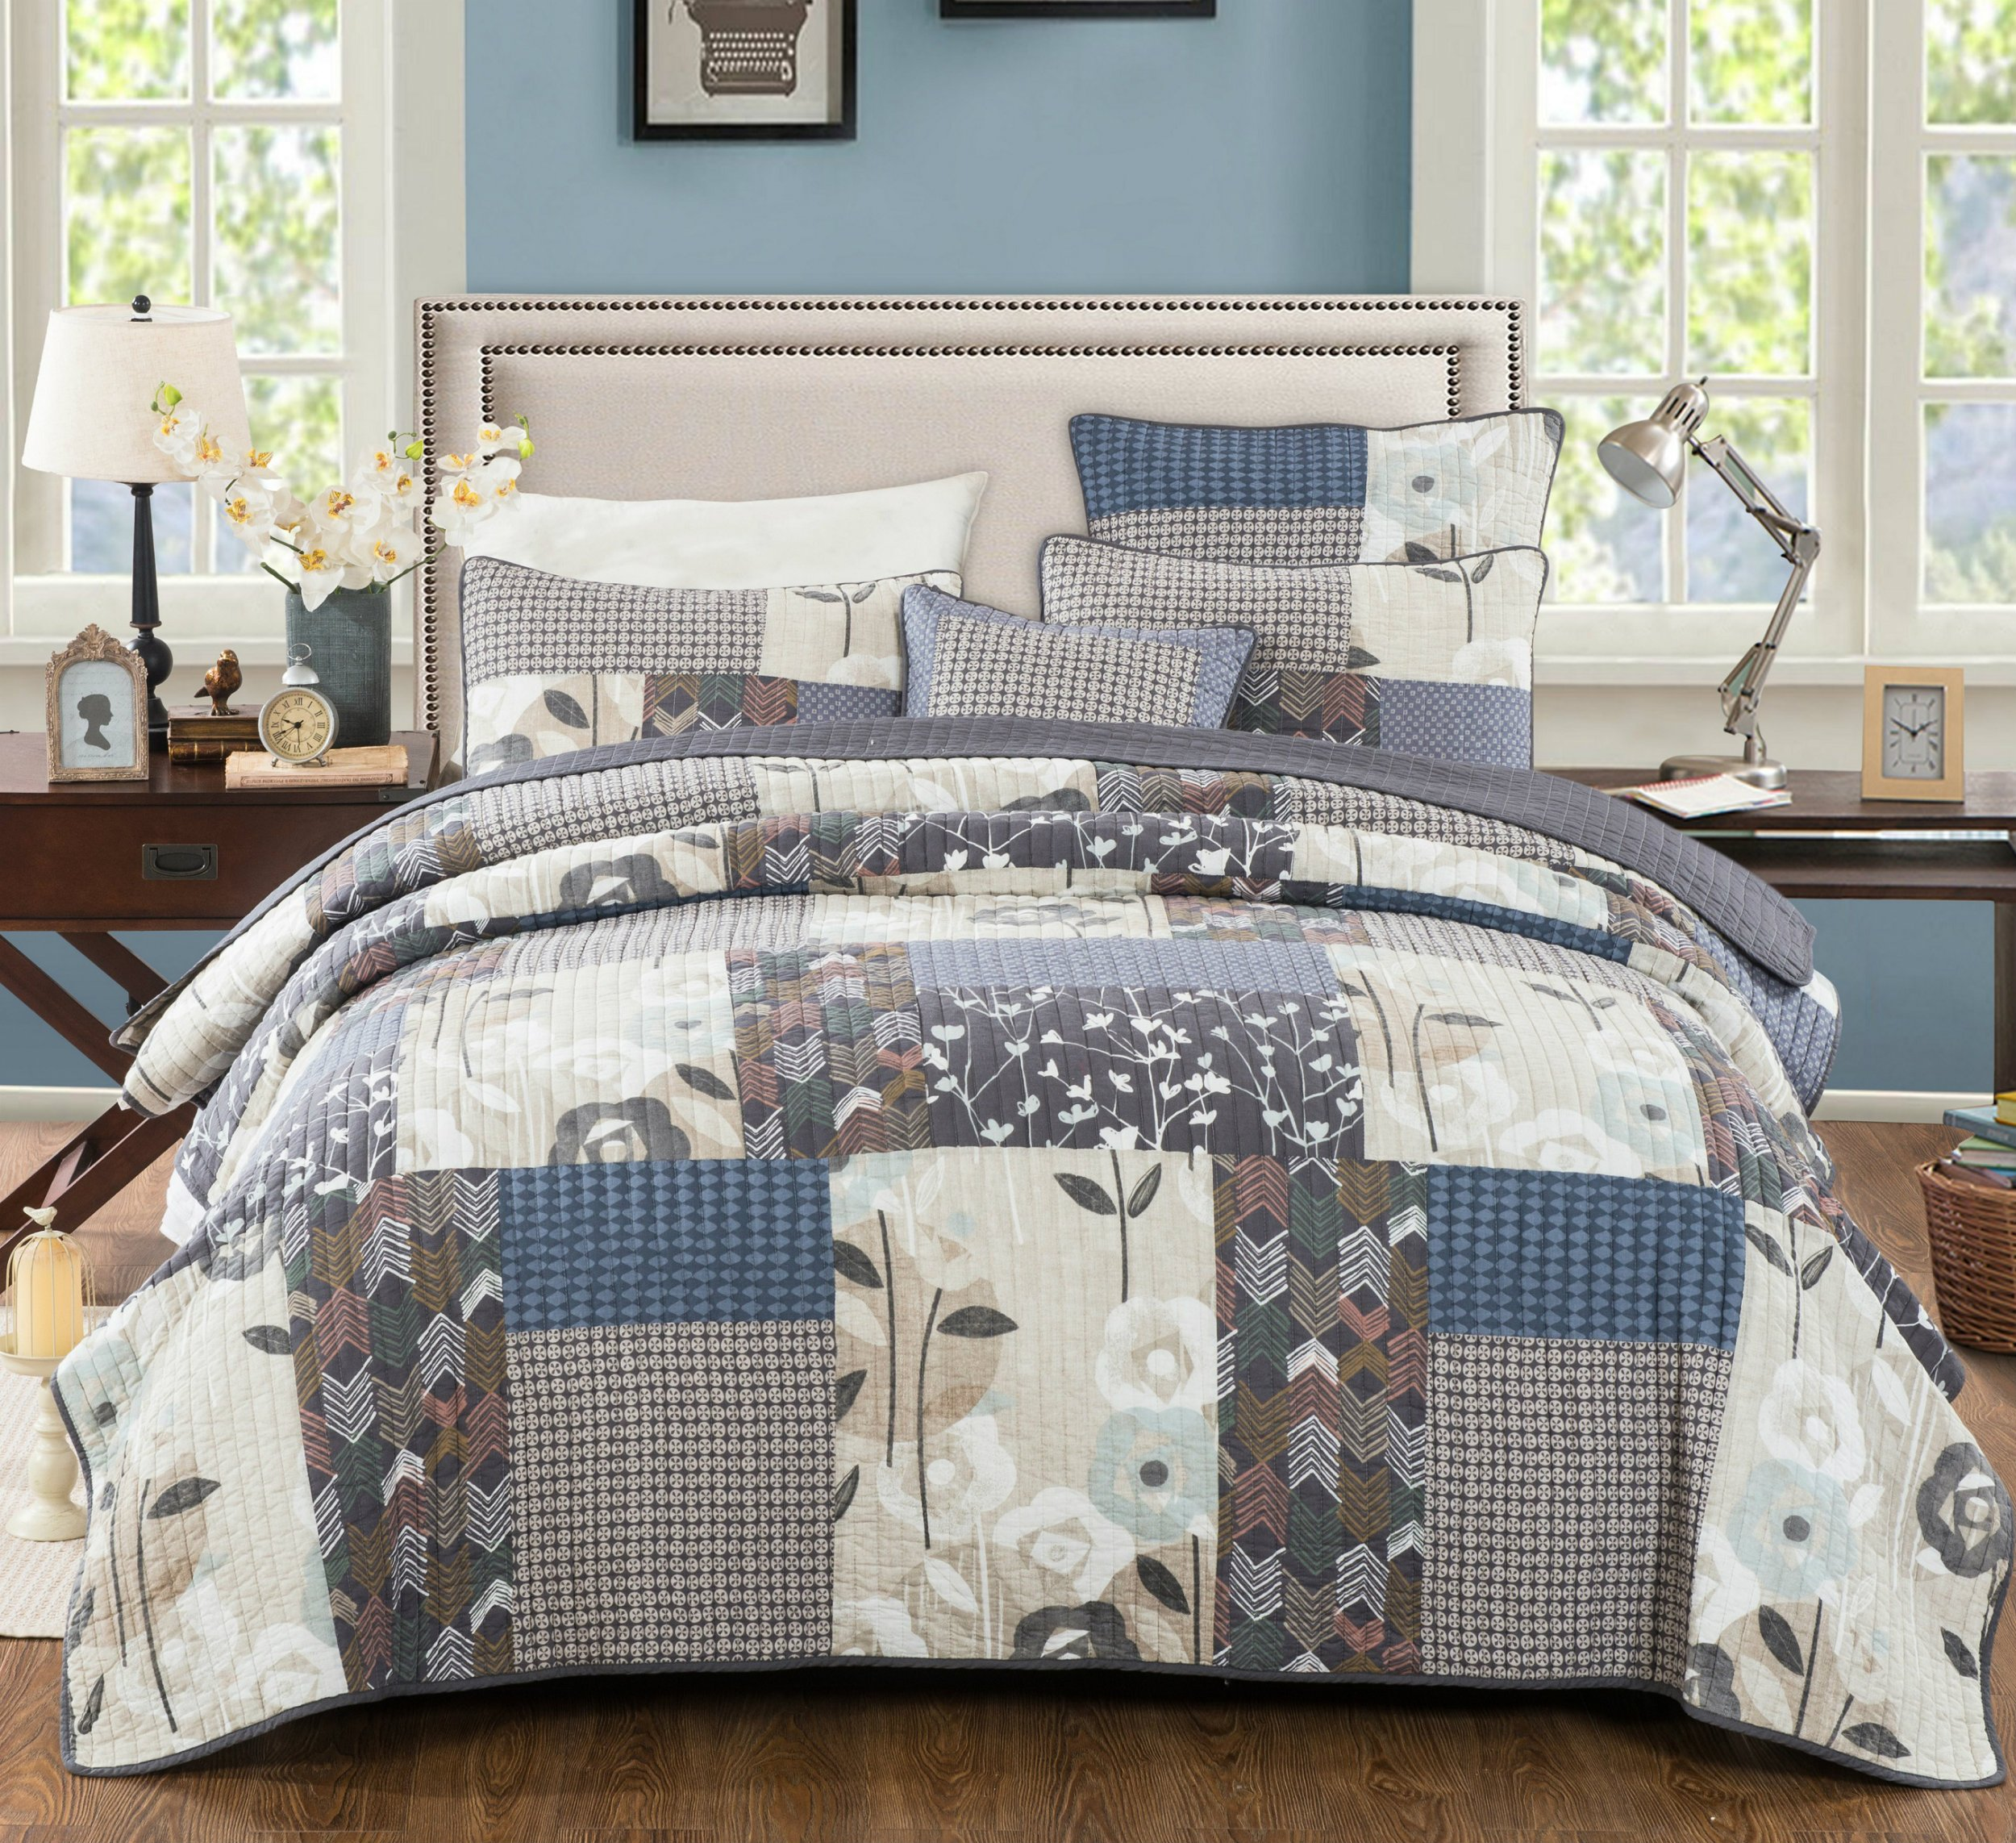 DaDa Bedding Patchwork Bedspread Set - Cotton Quiet Country Farmhouse Coverlet - Quilted Warm Multi Colorful - Blue Grey Tan Floral - Full - 3-Pieces